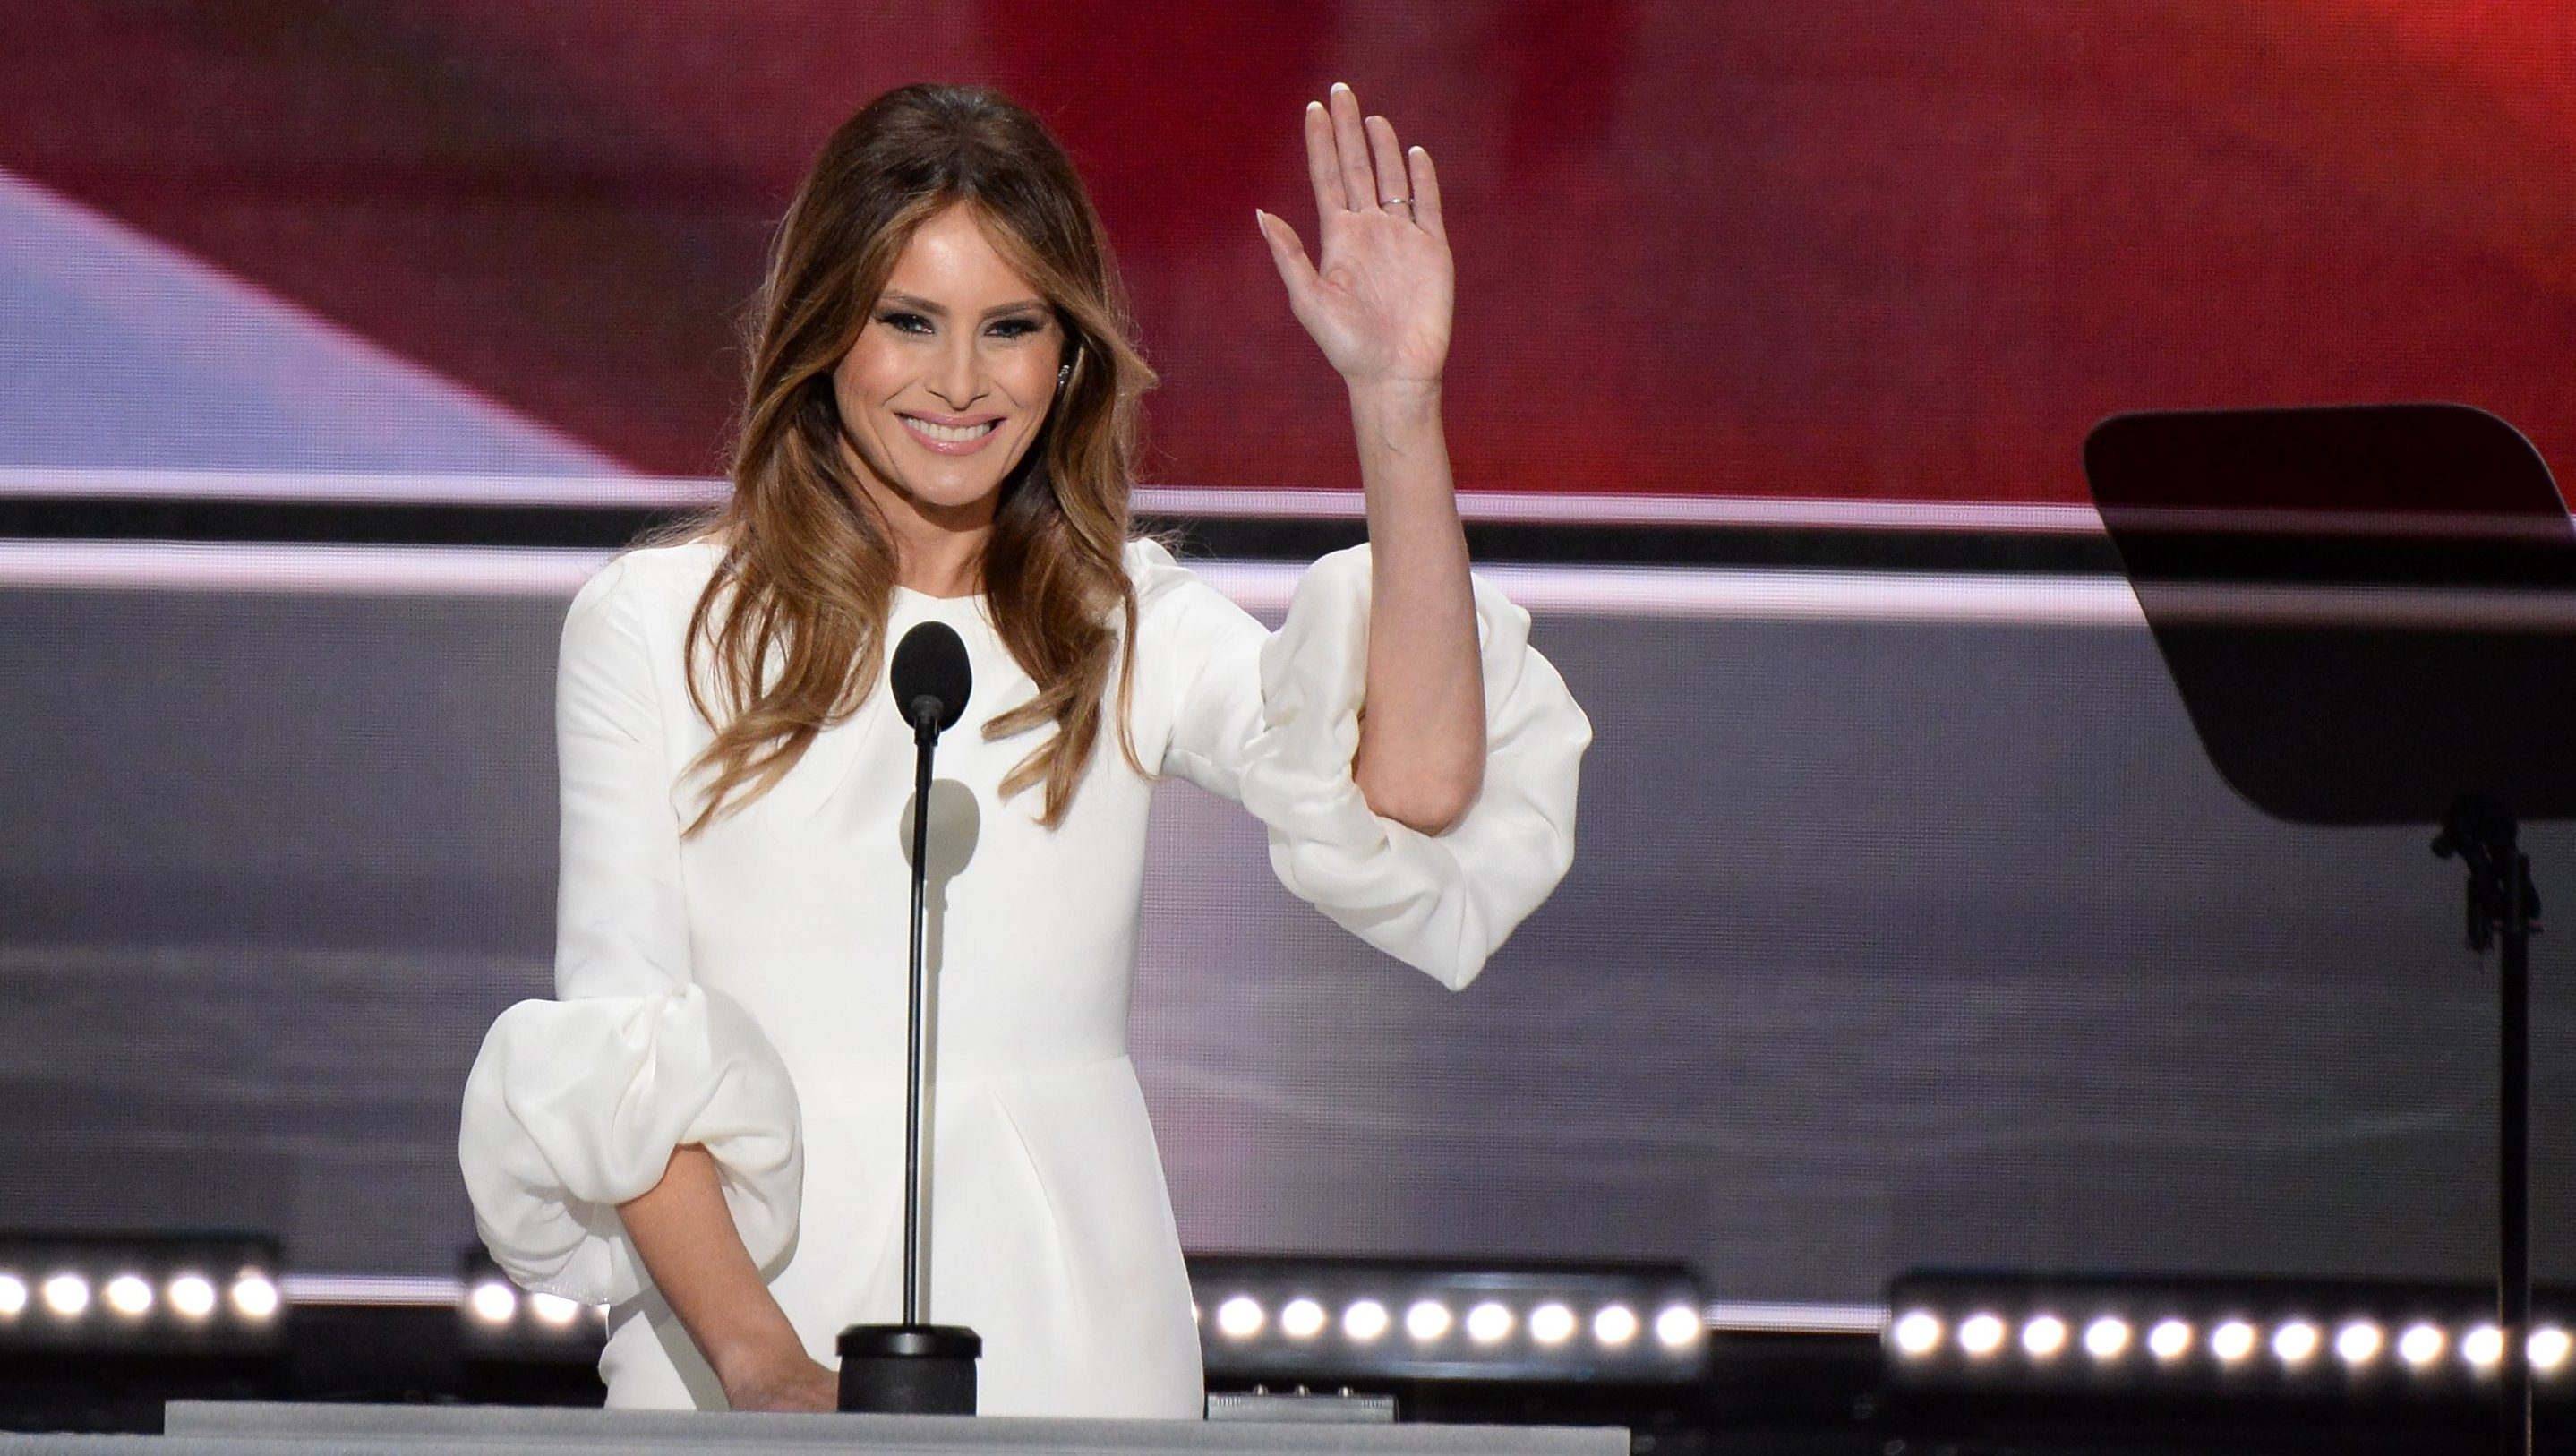 Melania Trump, wife of presumptive Republican presidential candidate Donald Trump, addresses delegates on the first day of the Republican National Convention on July 18, 2016 at Quicken Loans Arena in Cleveland, Ohio. (Getty)